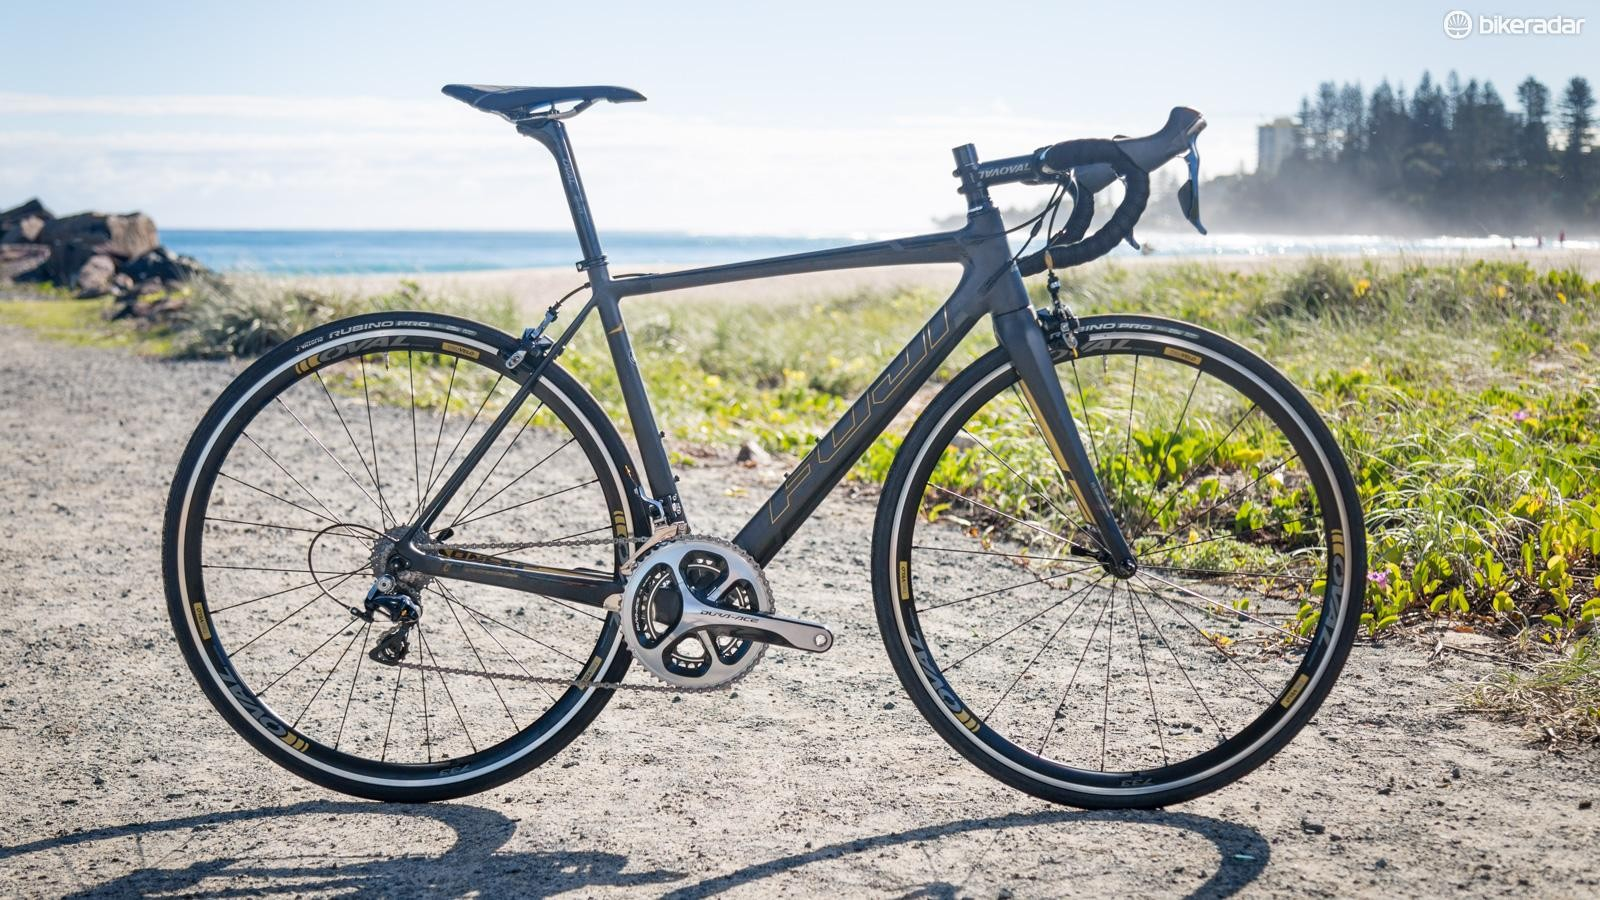 We've just received the new featherweight 2016 Fuji SL 1.5